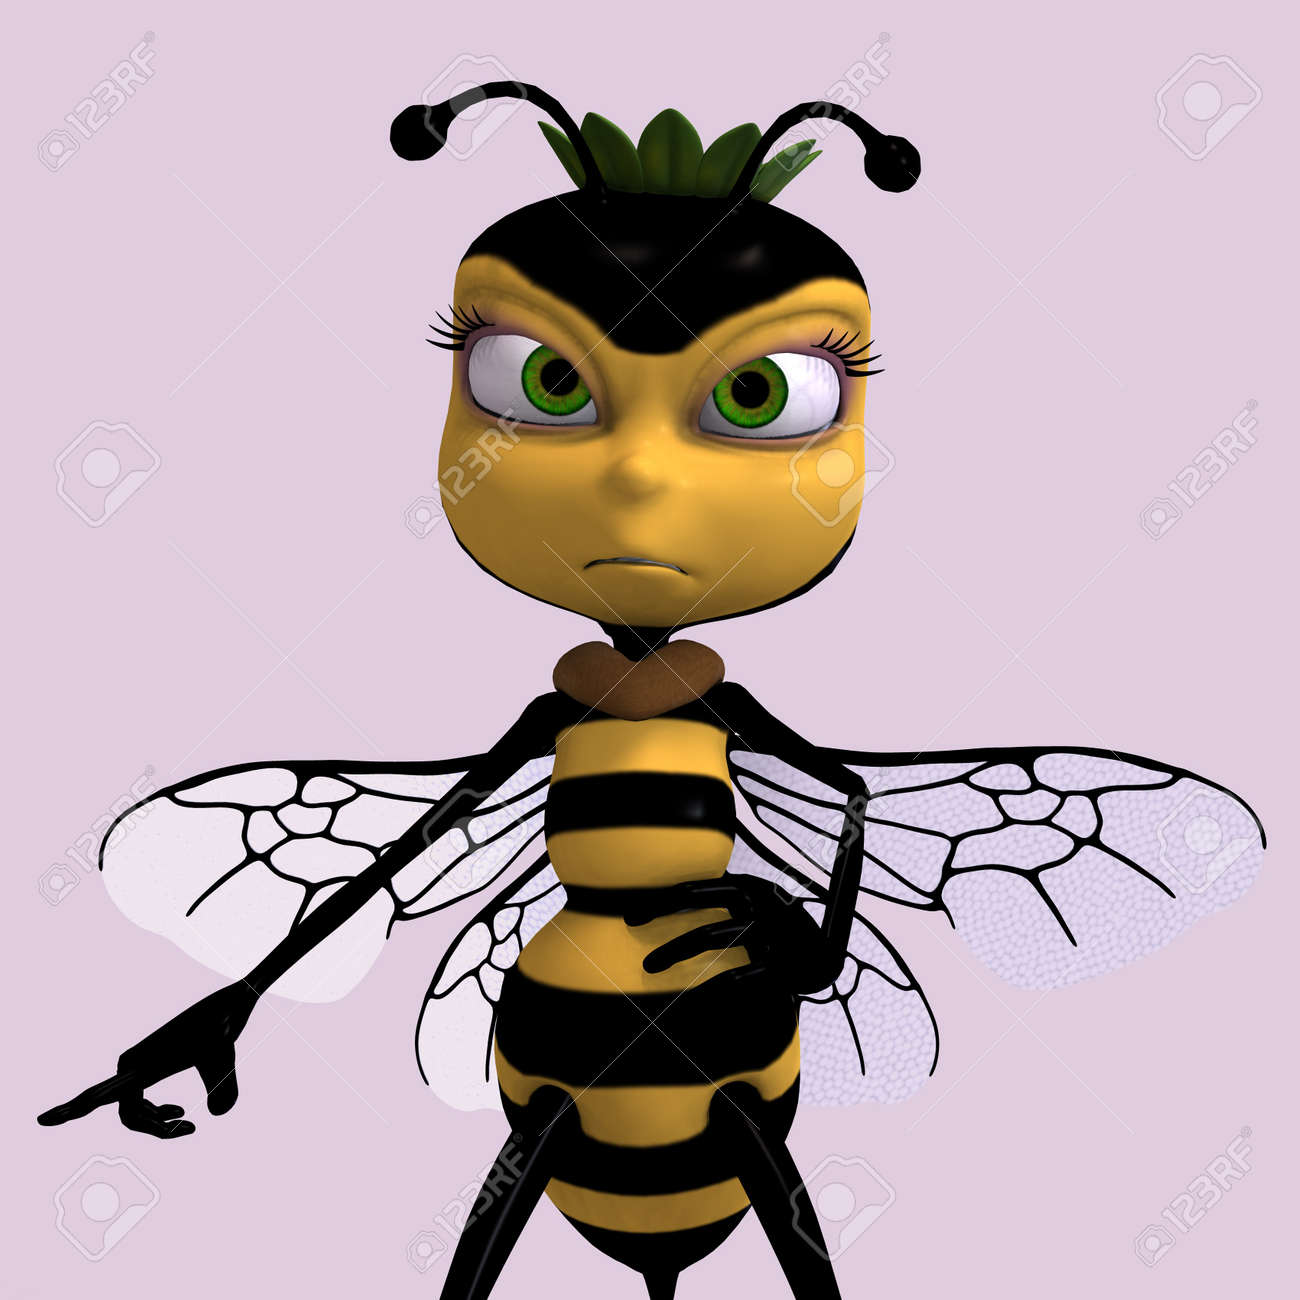 queen bee stock photos royalty free queen bee images and pictures